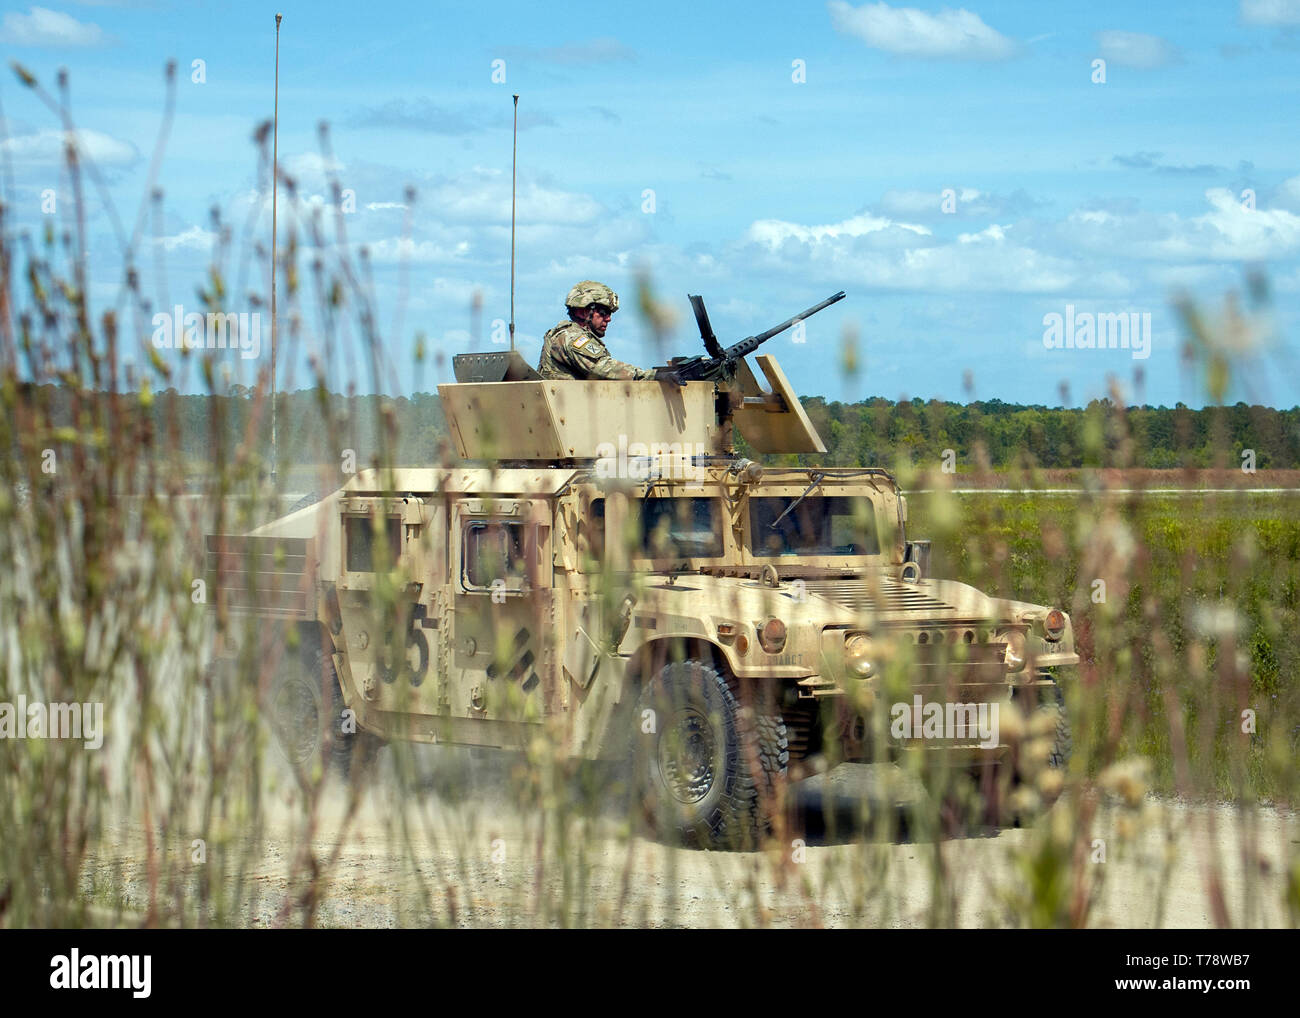 30th Armored Brigade Combat Team Stock Photos & 30th Armored